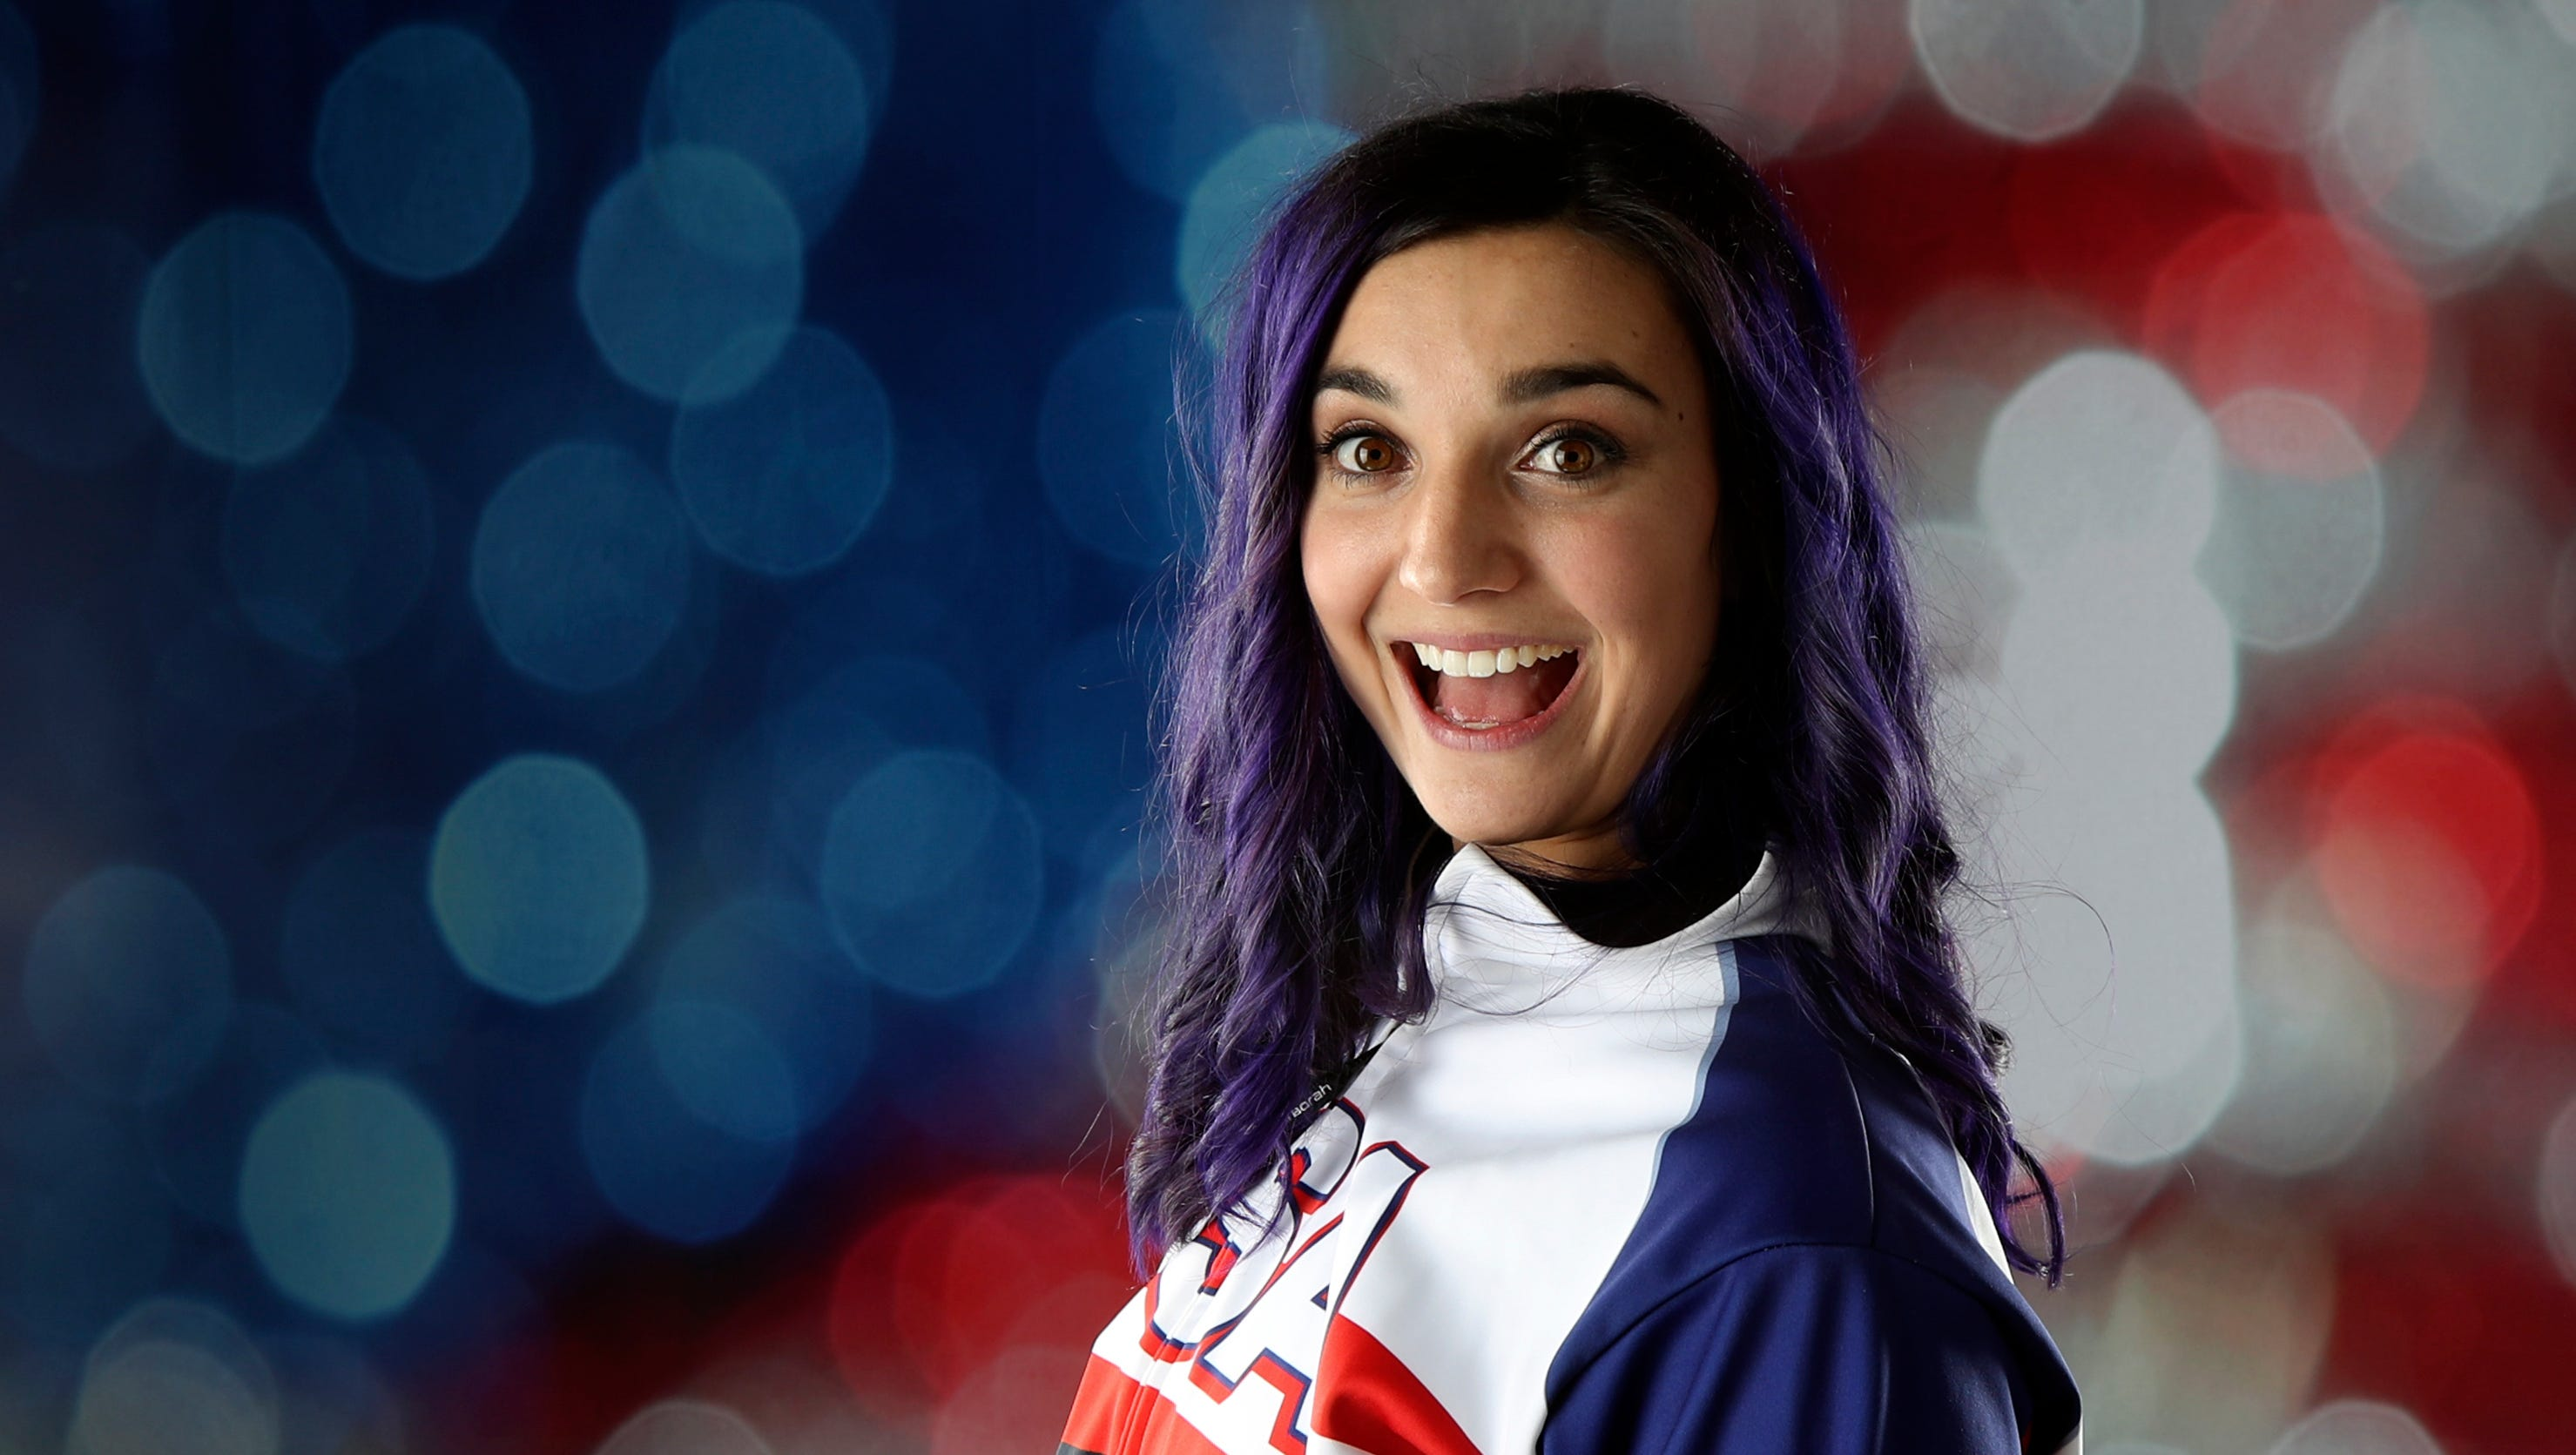 Paralympics: Brenna Huckaby discovers new goals in